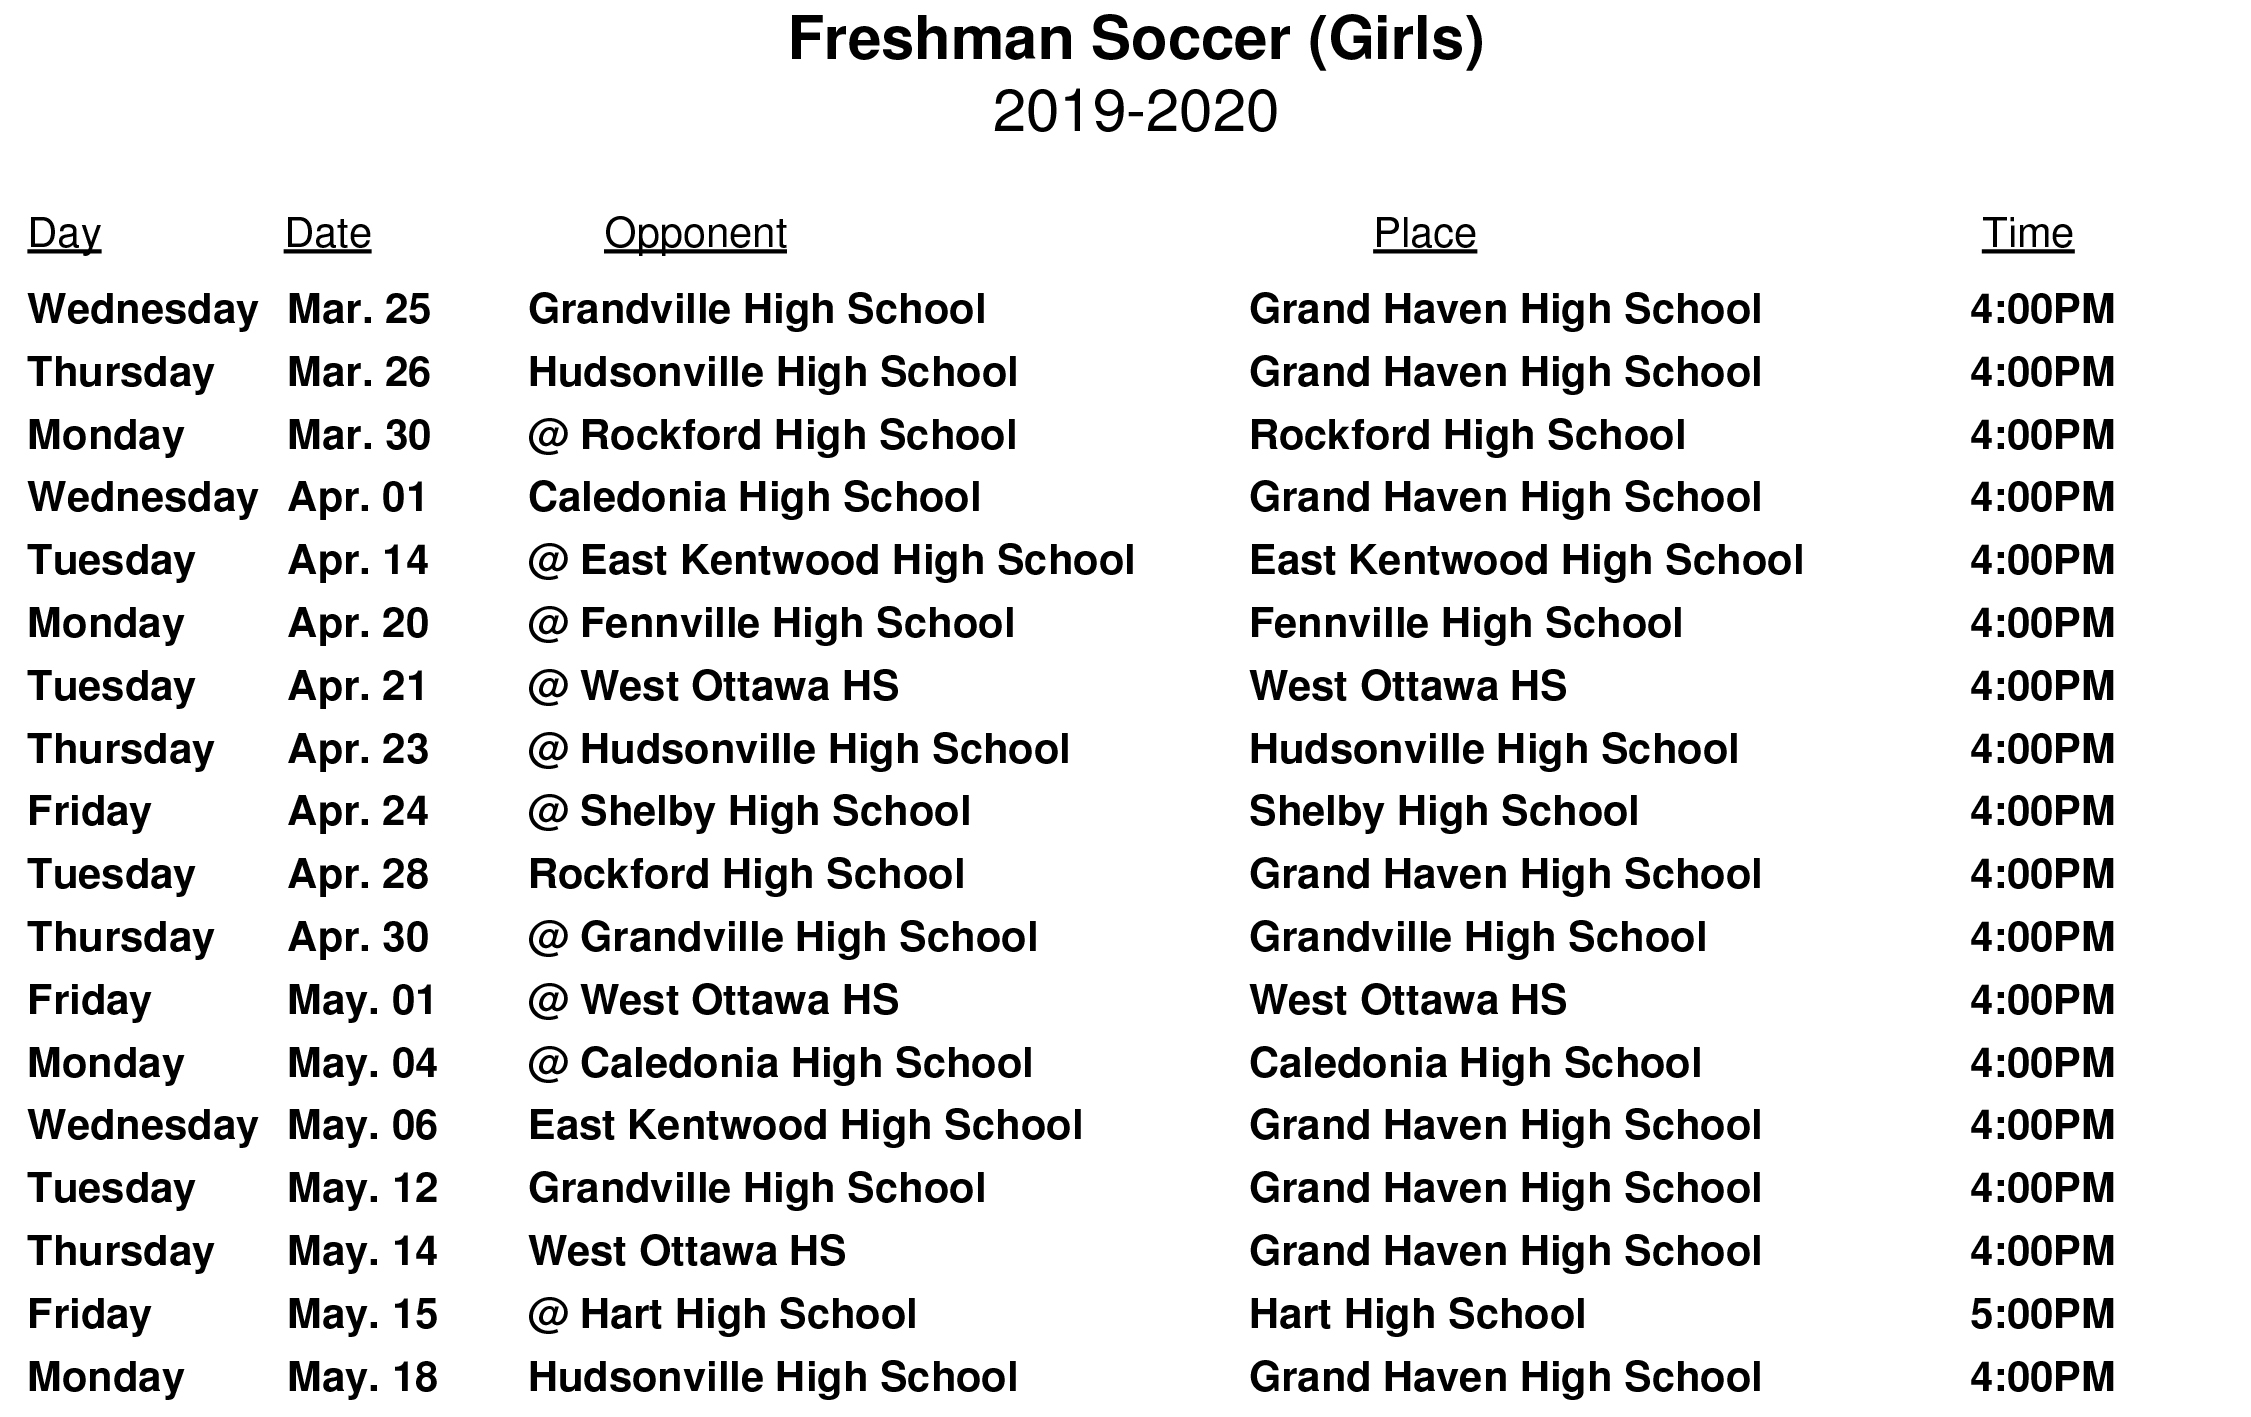 Freshman Girls Soccer Schedule - Grand Haven High School Soccer Pertaining To When Does Grand Haven High School Start School 2020